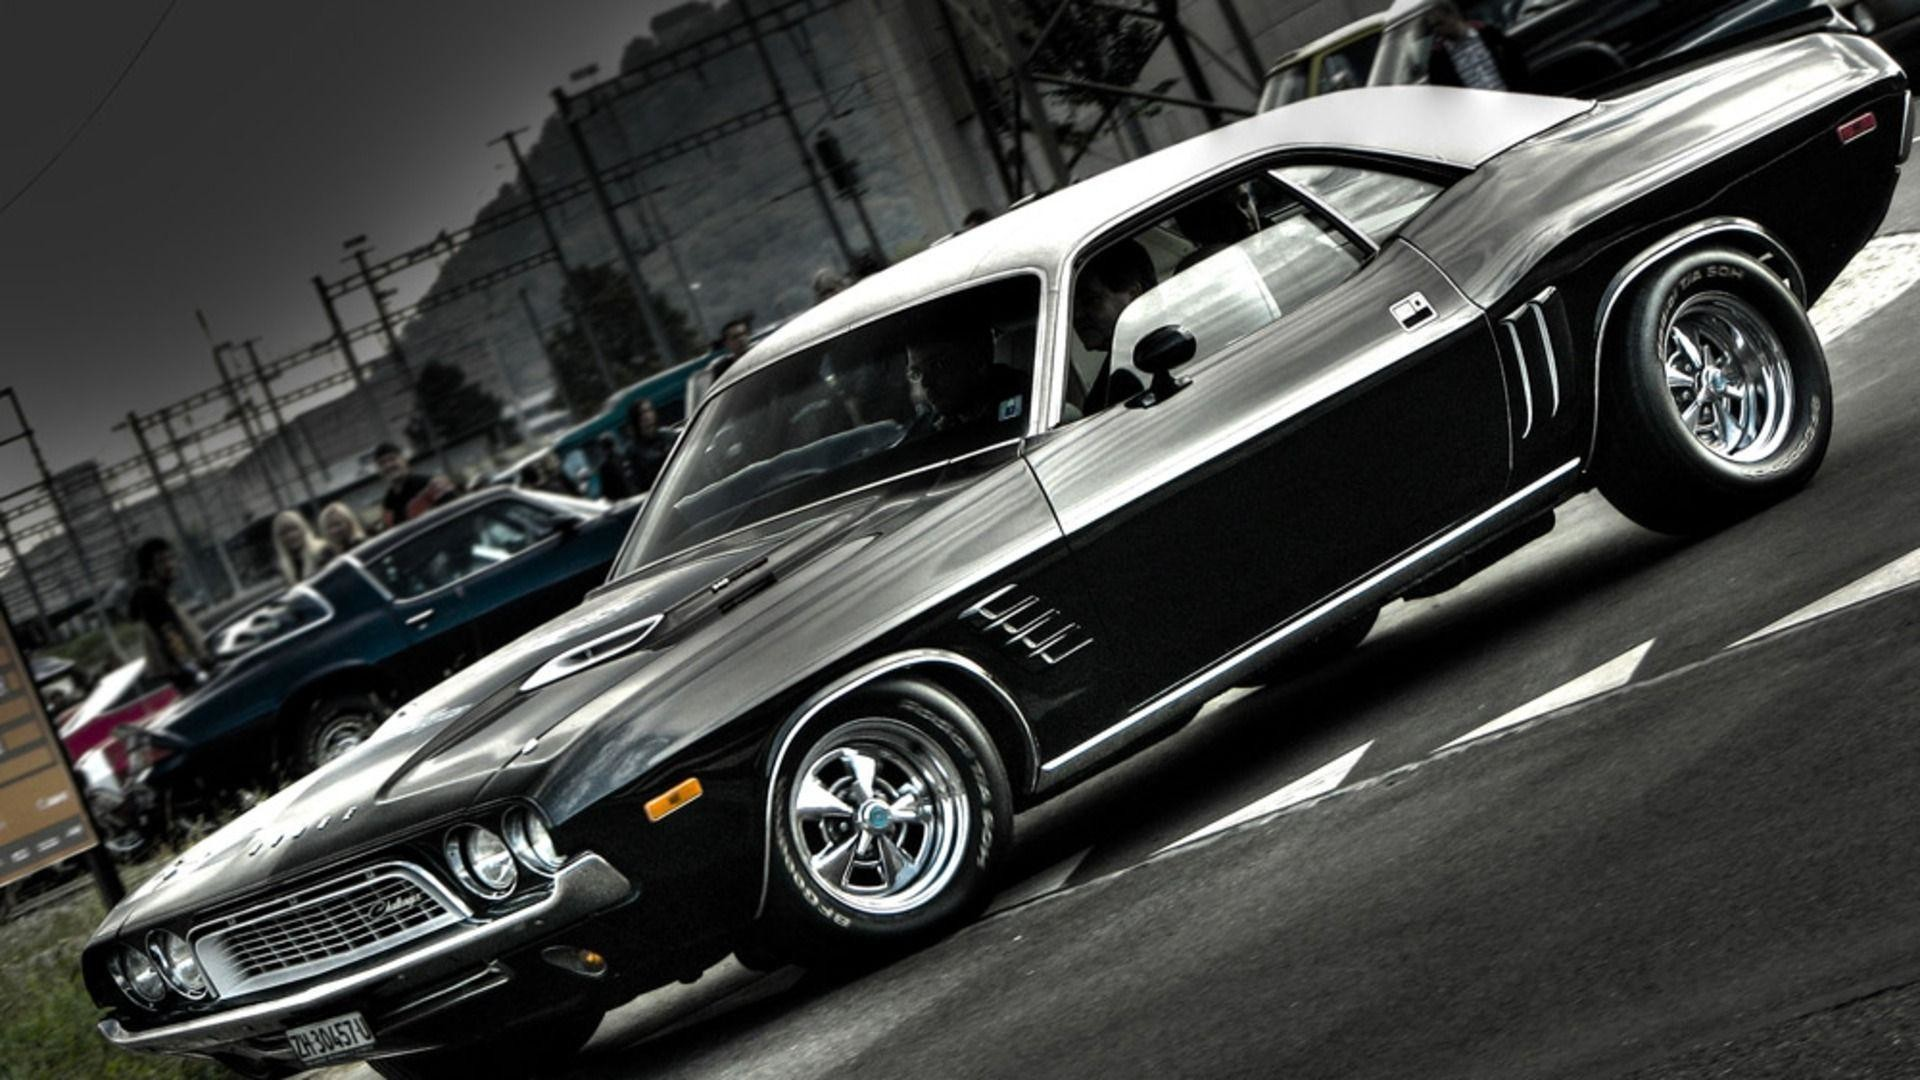 Modified Cars Muscle Elegant Old Muscle Cars Hd Wallpapers Wallpaper Cave